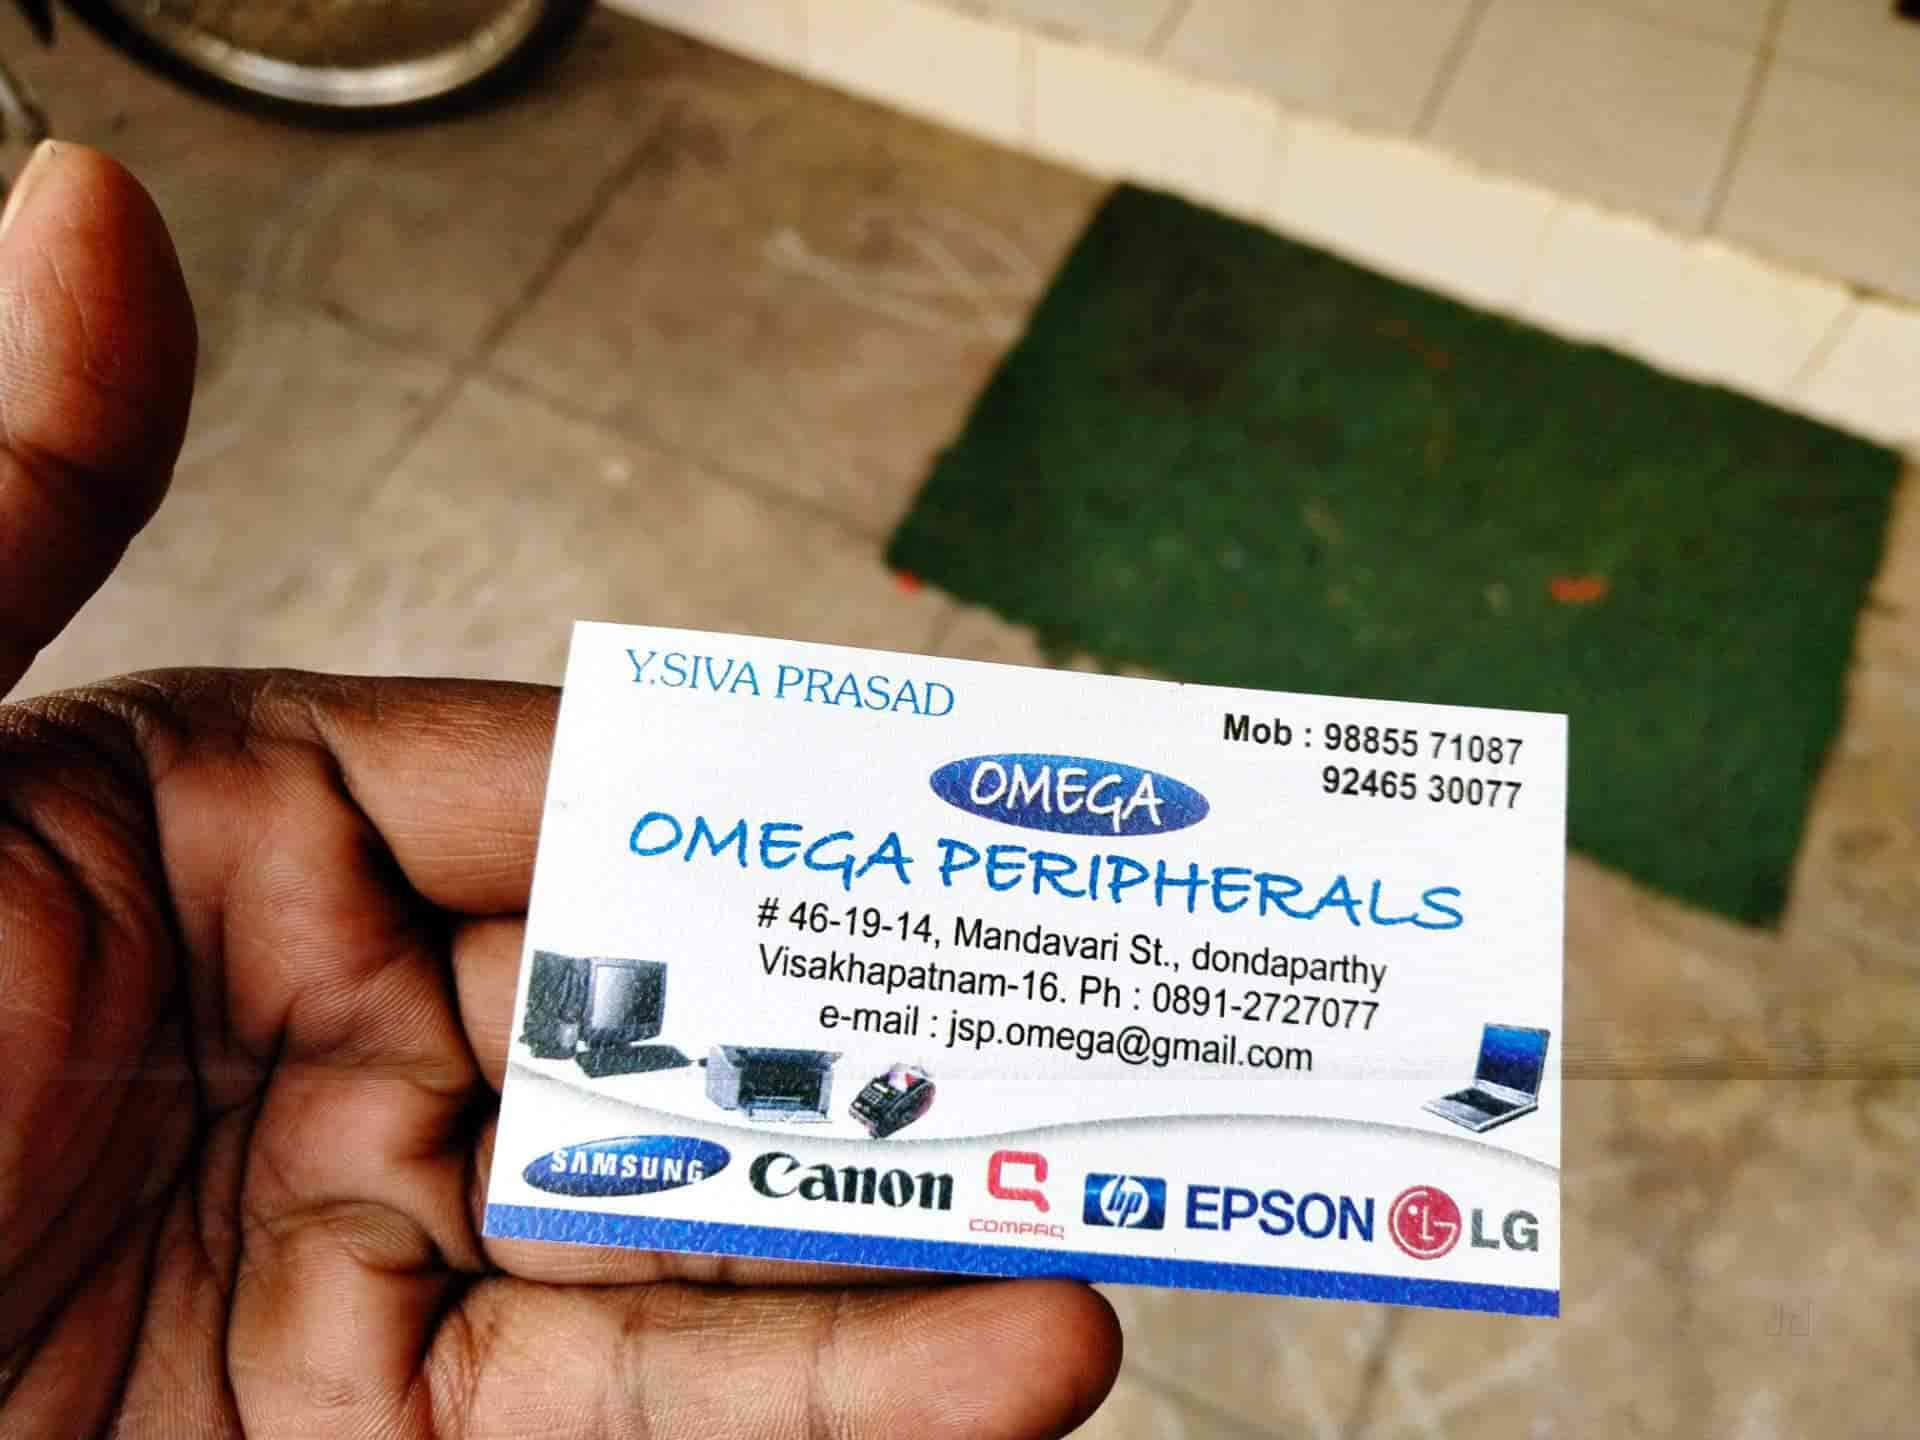 Omega Peripheral, Dondaparthy - Computer Repair & Services in